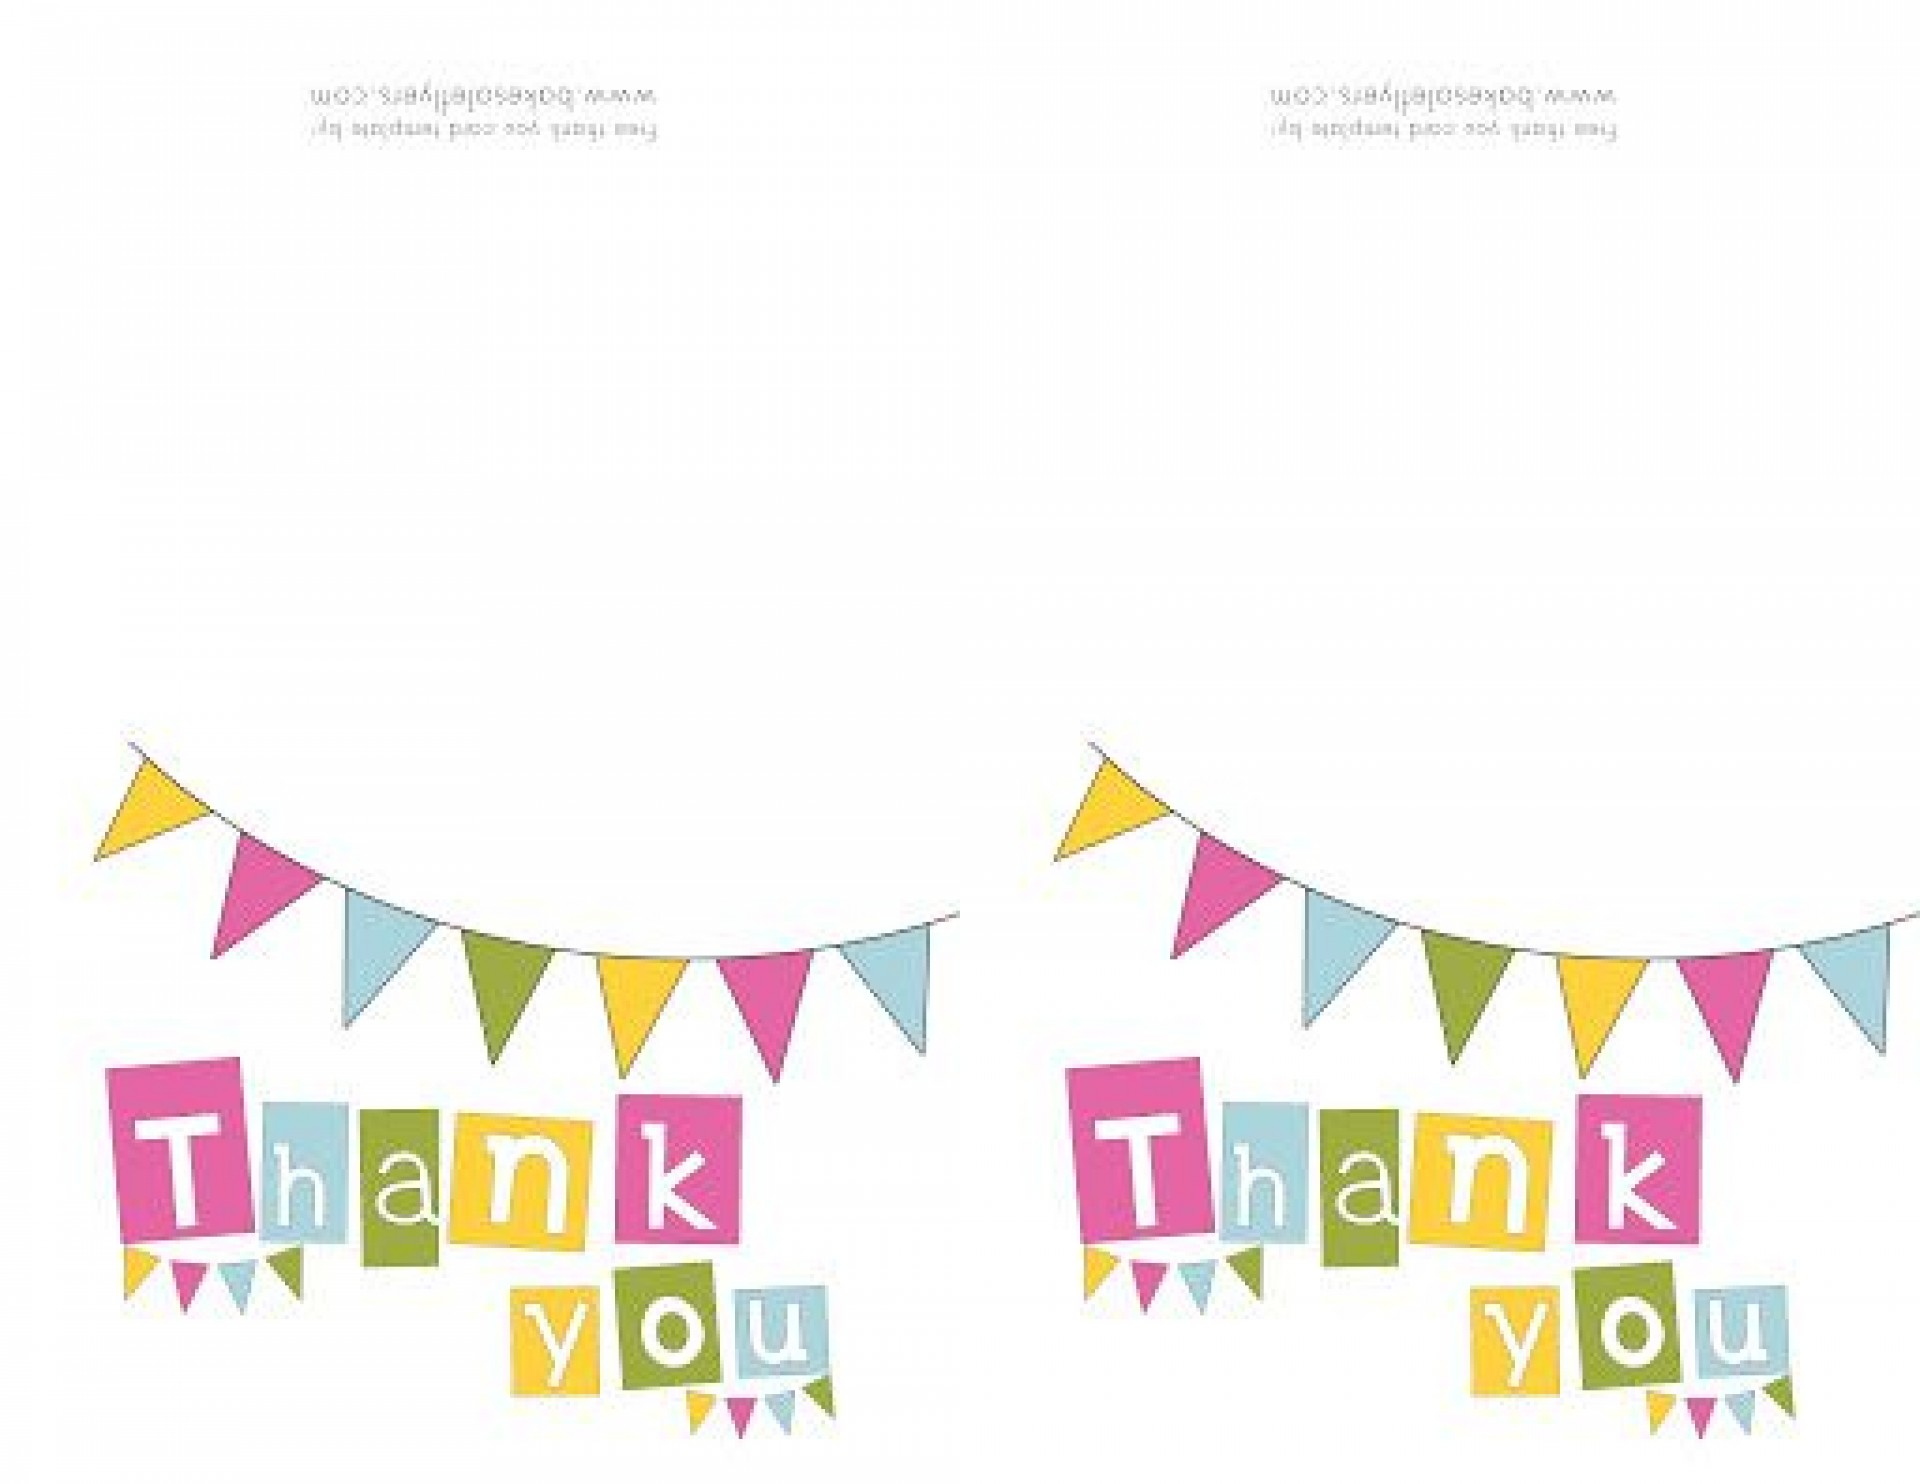 009 Awesome Free Thank You Note Template Word Picture  Card Download1920